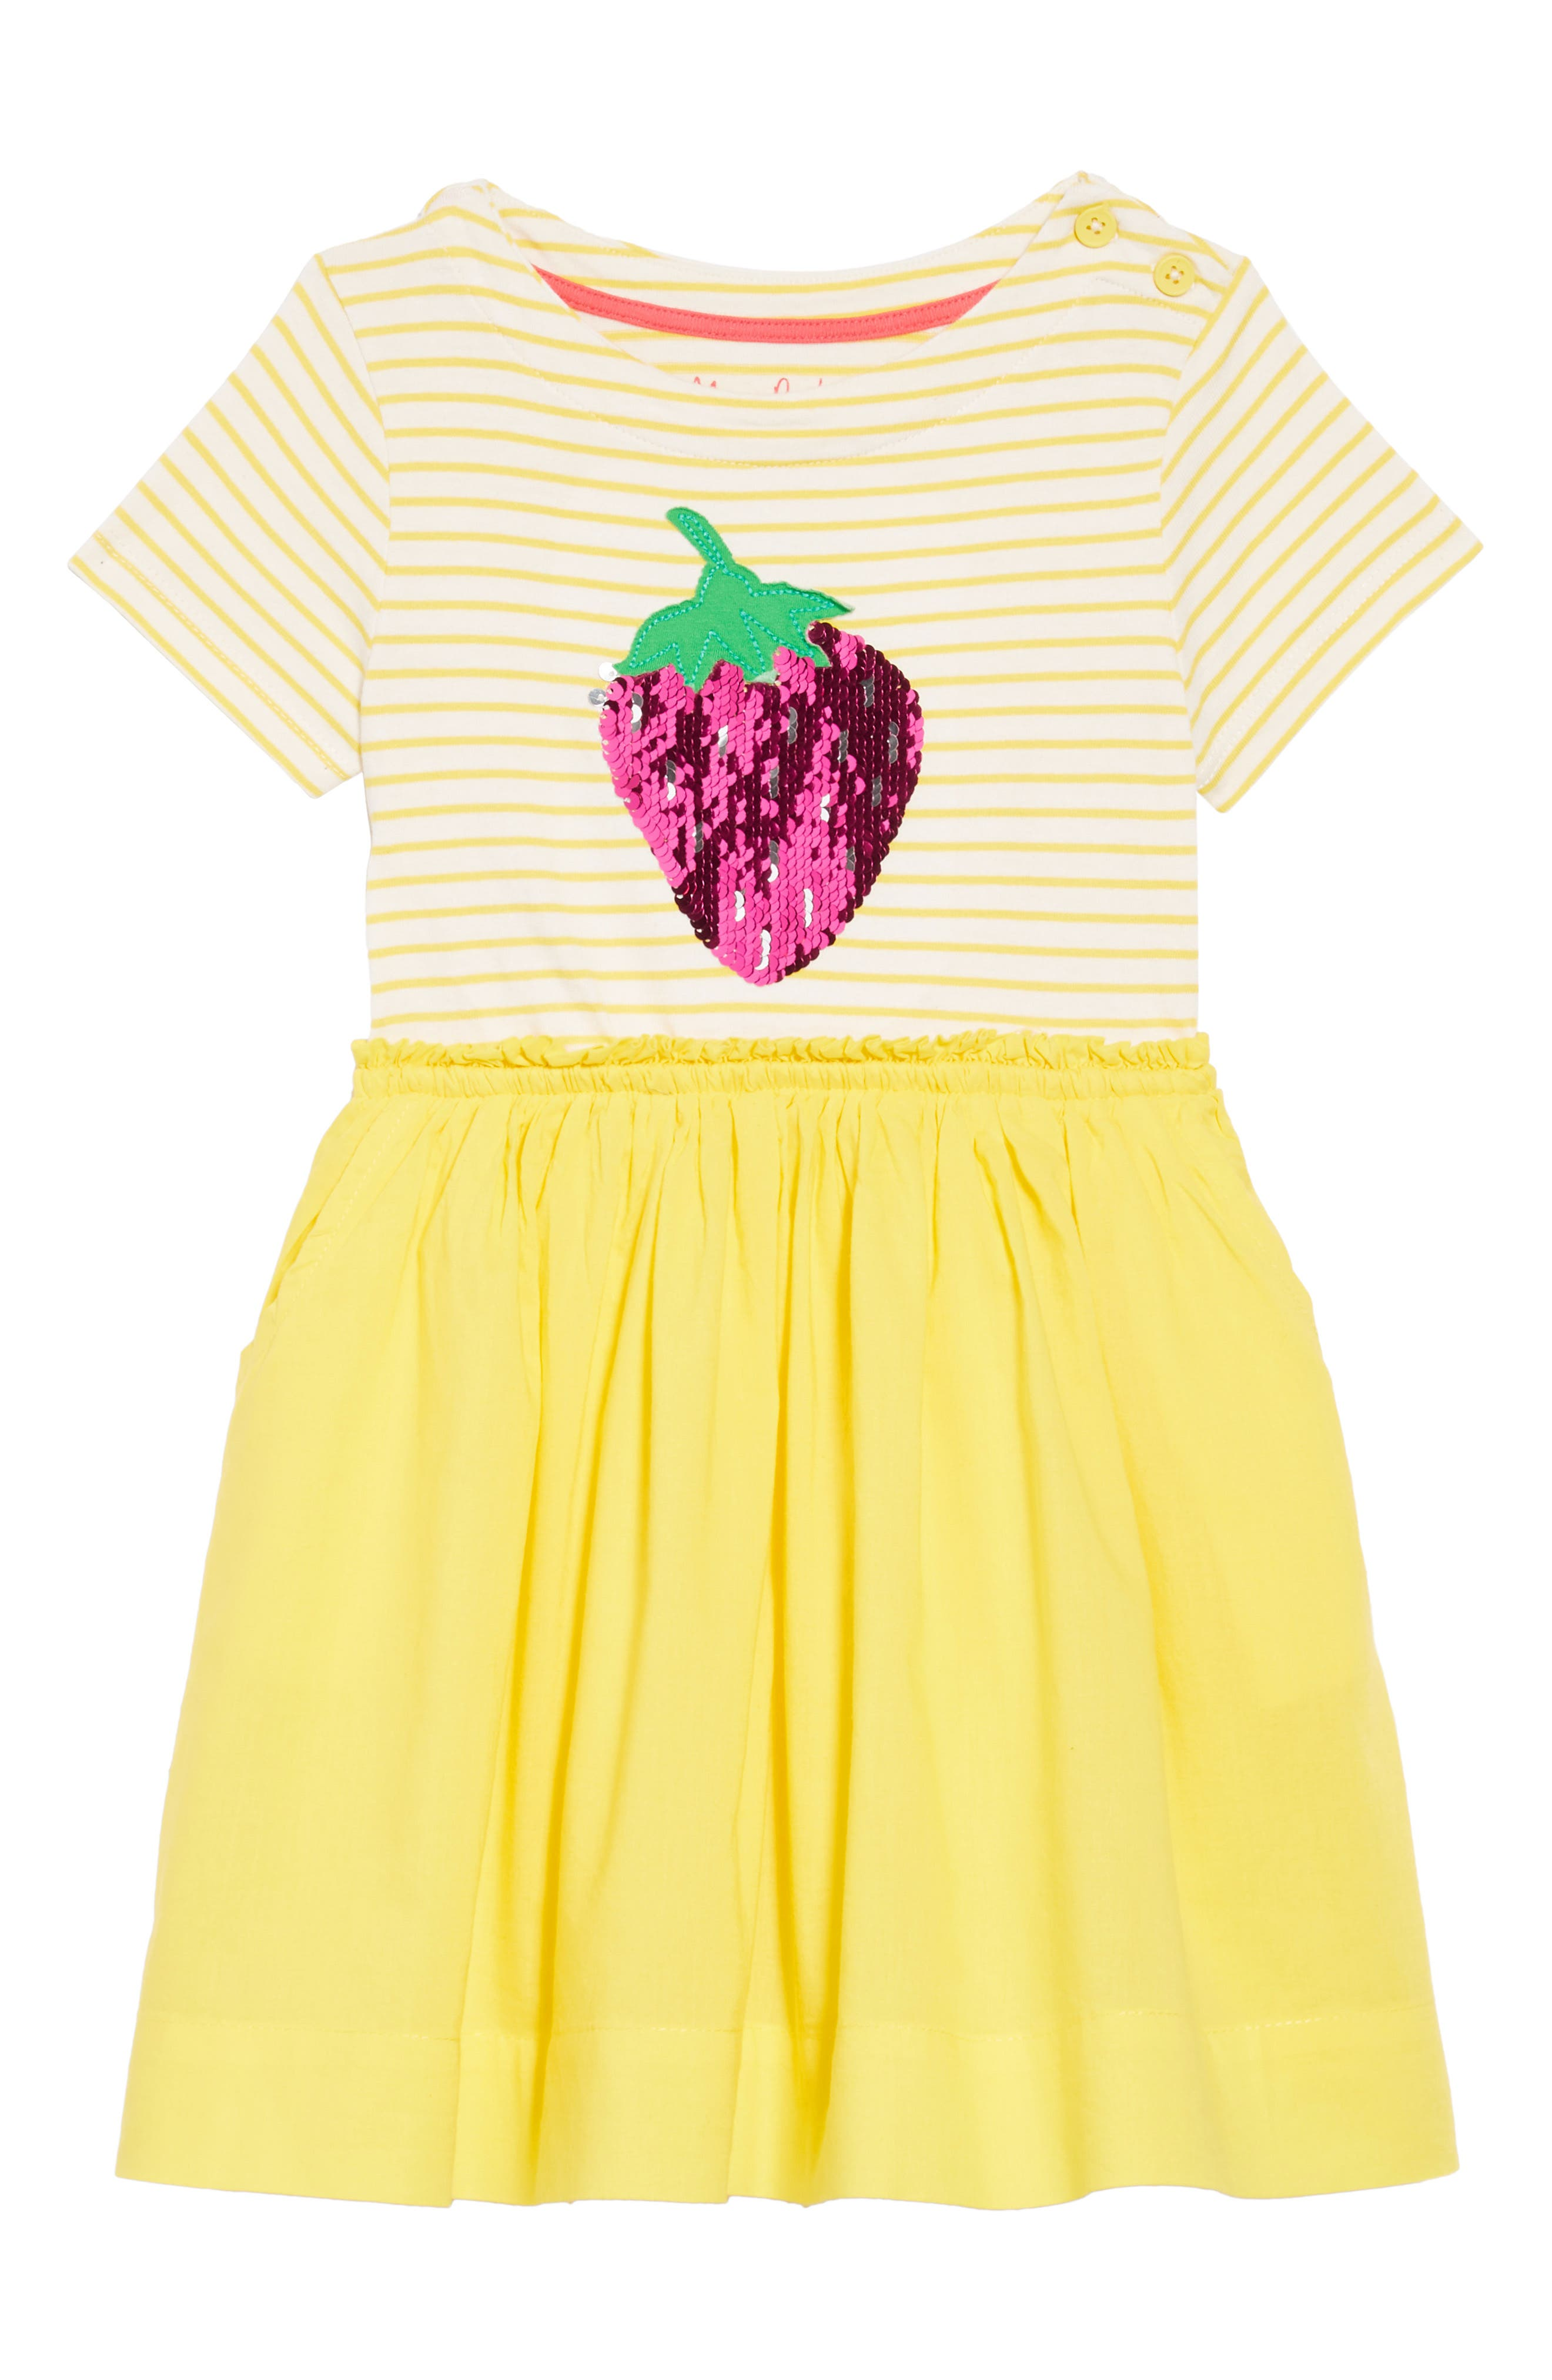 Color Change Sequin Strawberry Dress,                         Main,                         color, Sunshine Yellow Strawberry